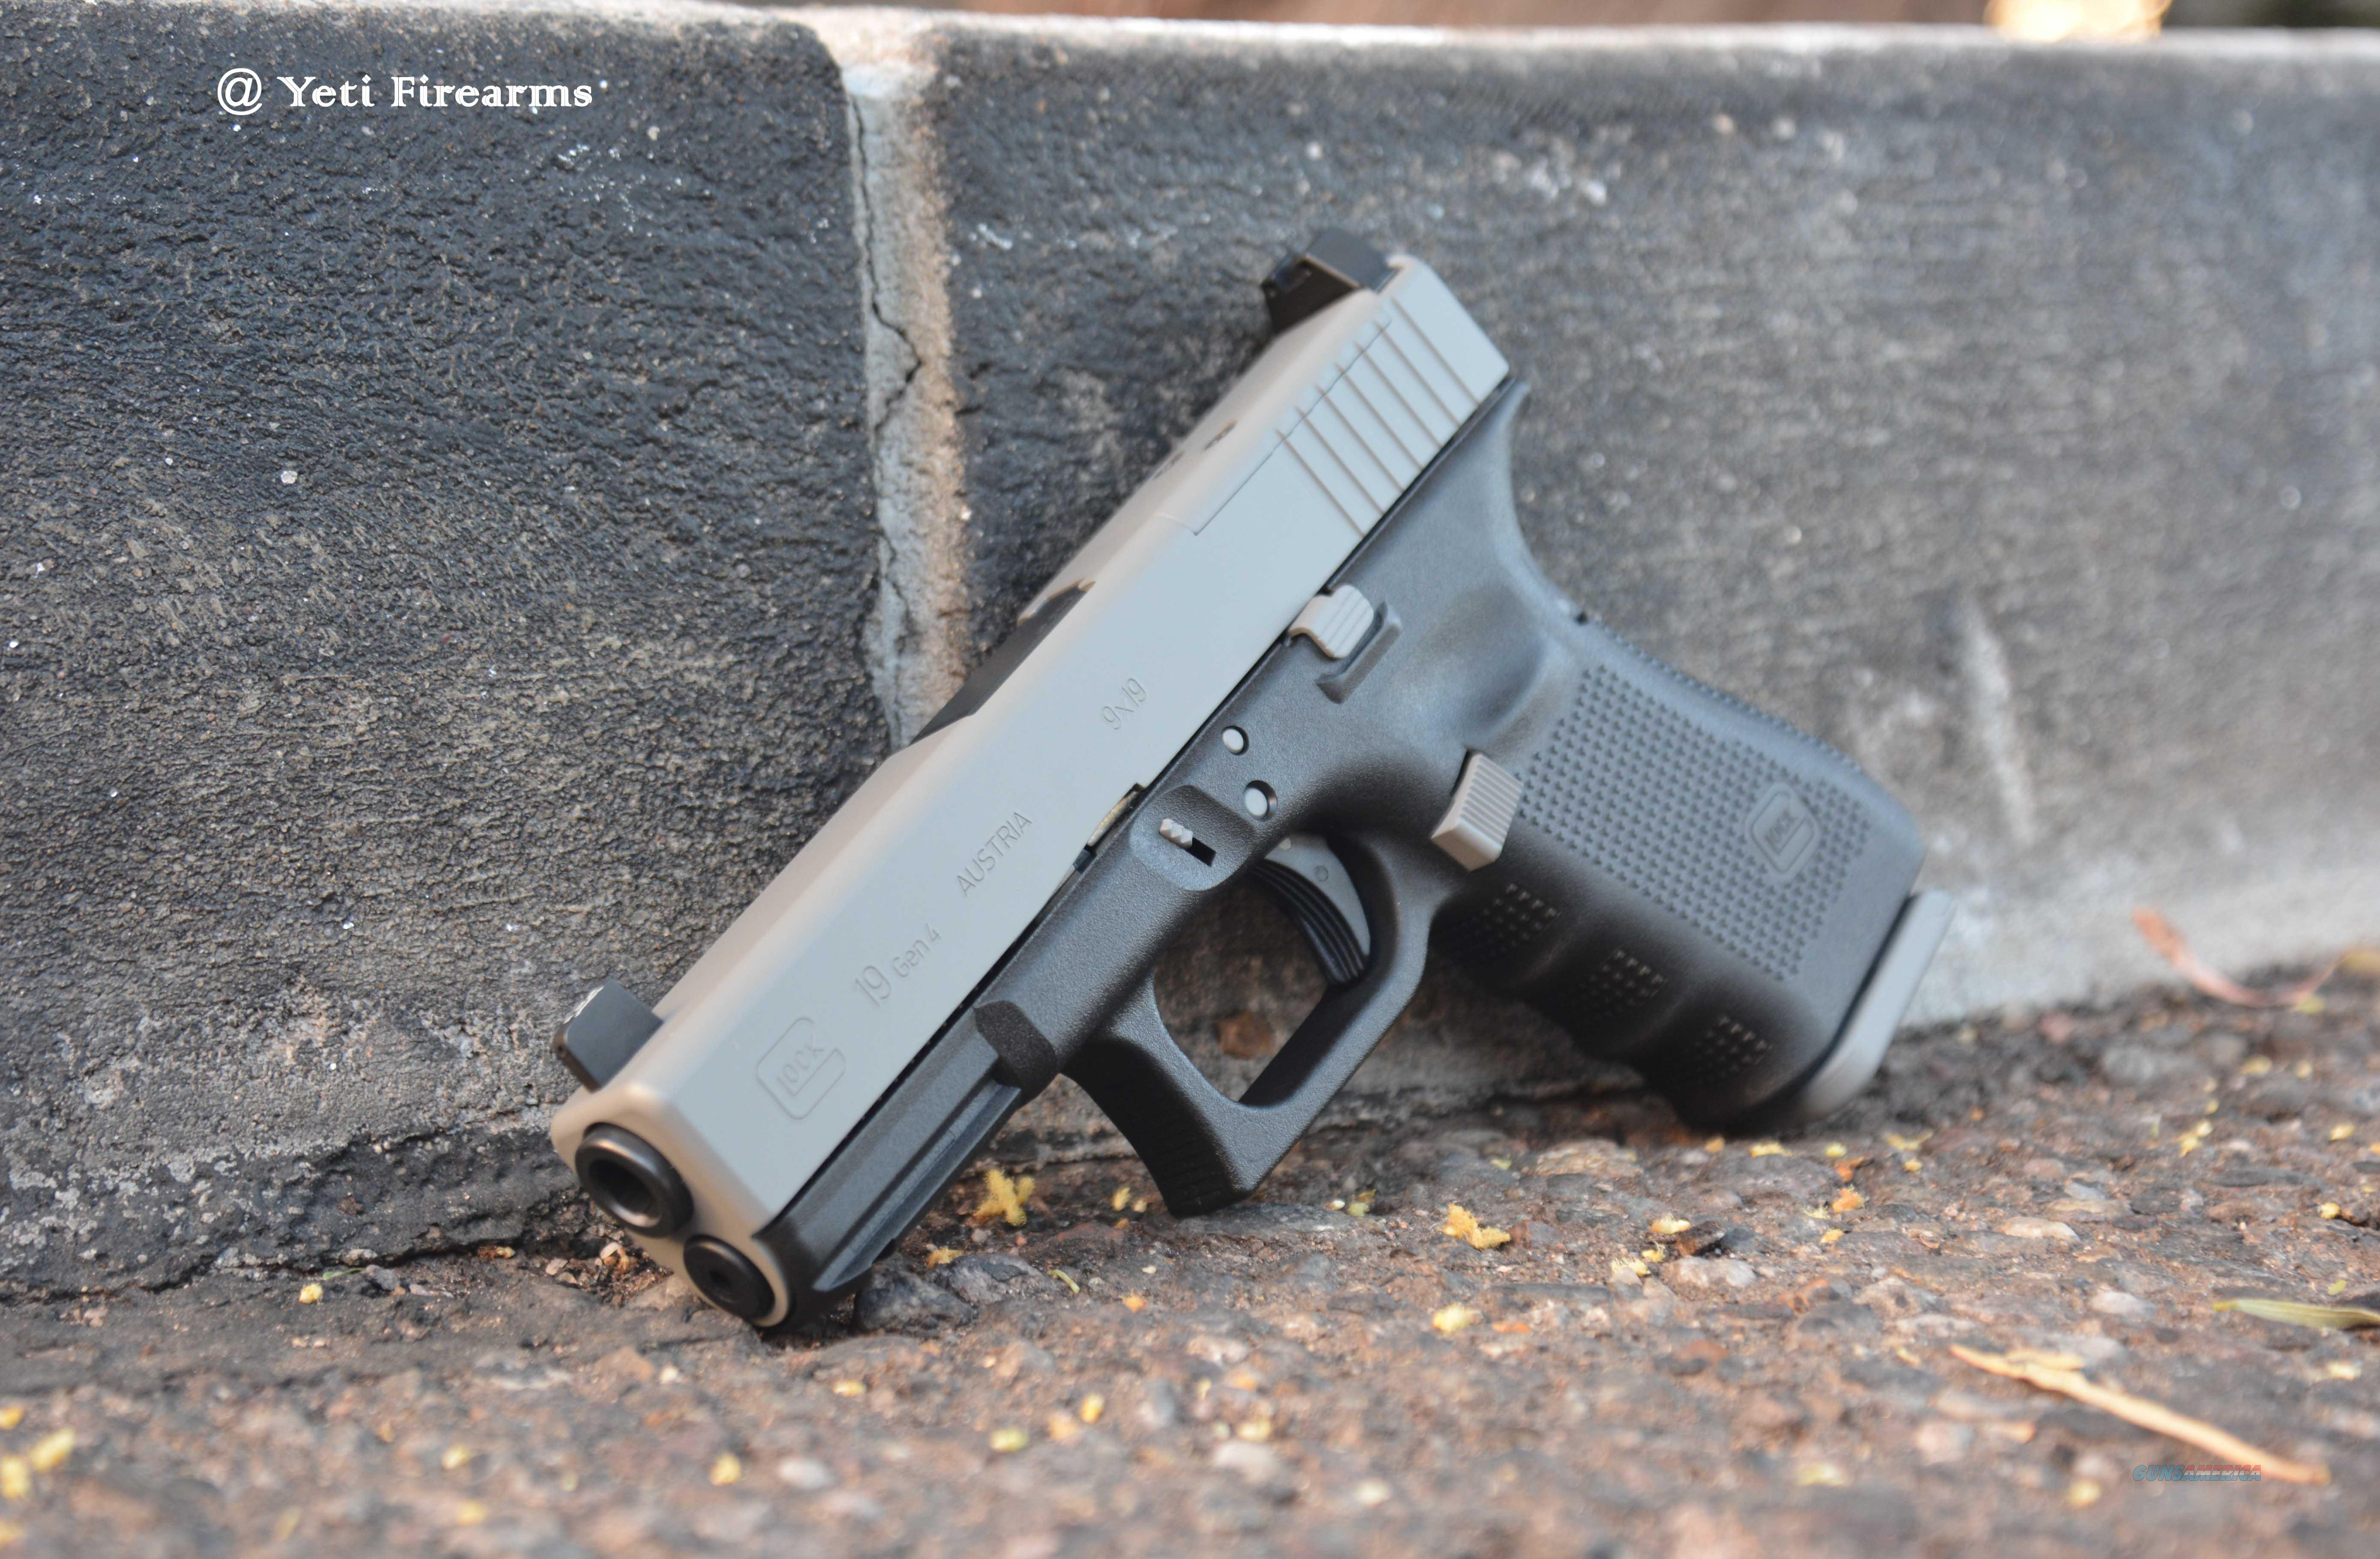 X-Werks Glock 19 Gen 4 MOS 9mm Ghost Grey Supp NS  Guns > Pistols > Glock Pistols > 19